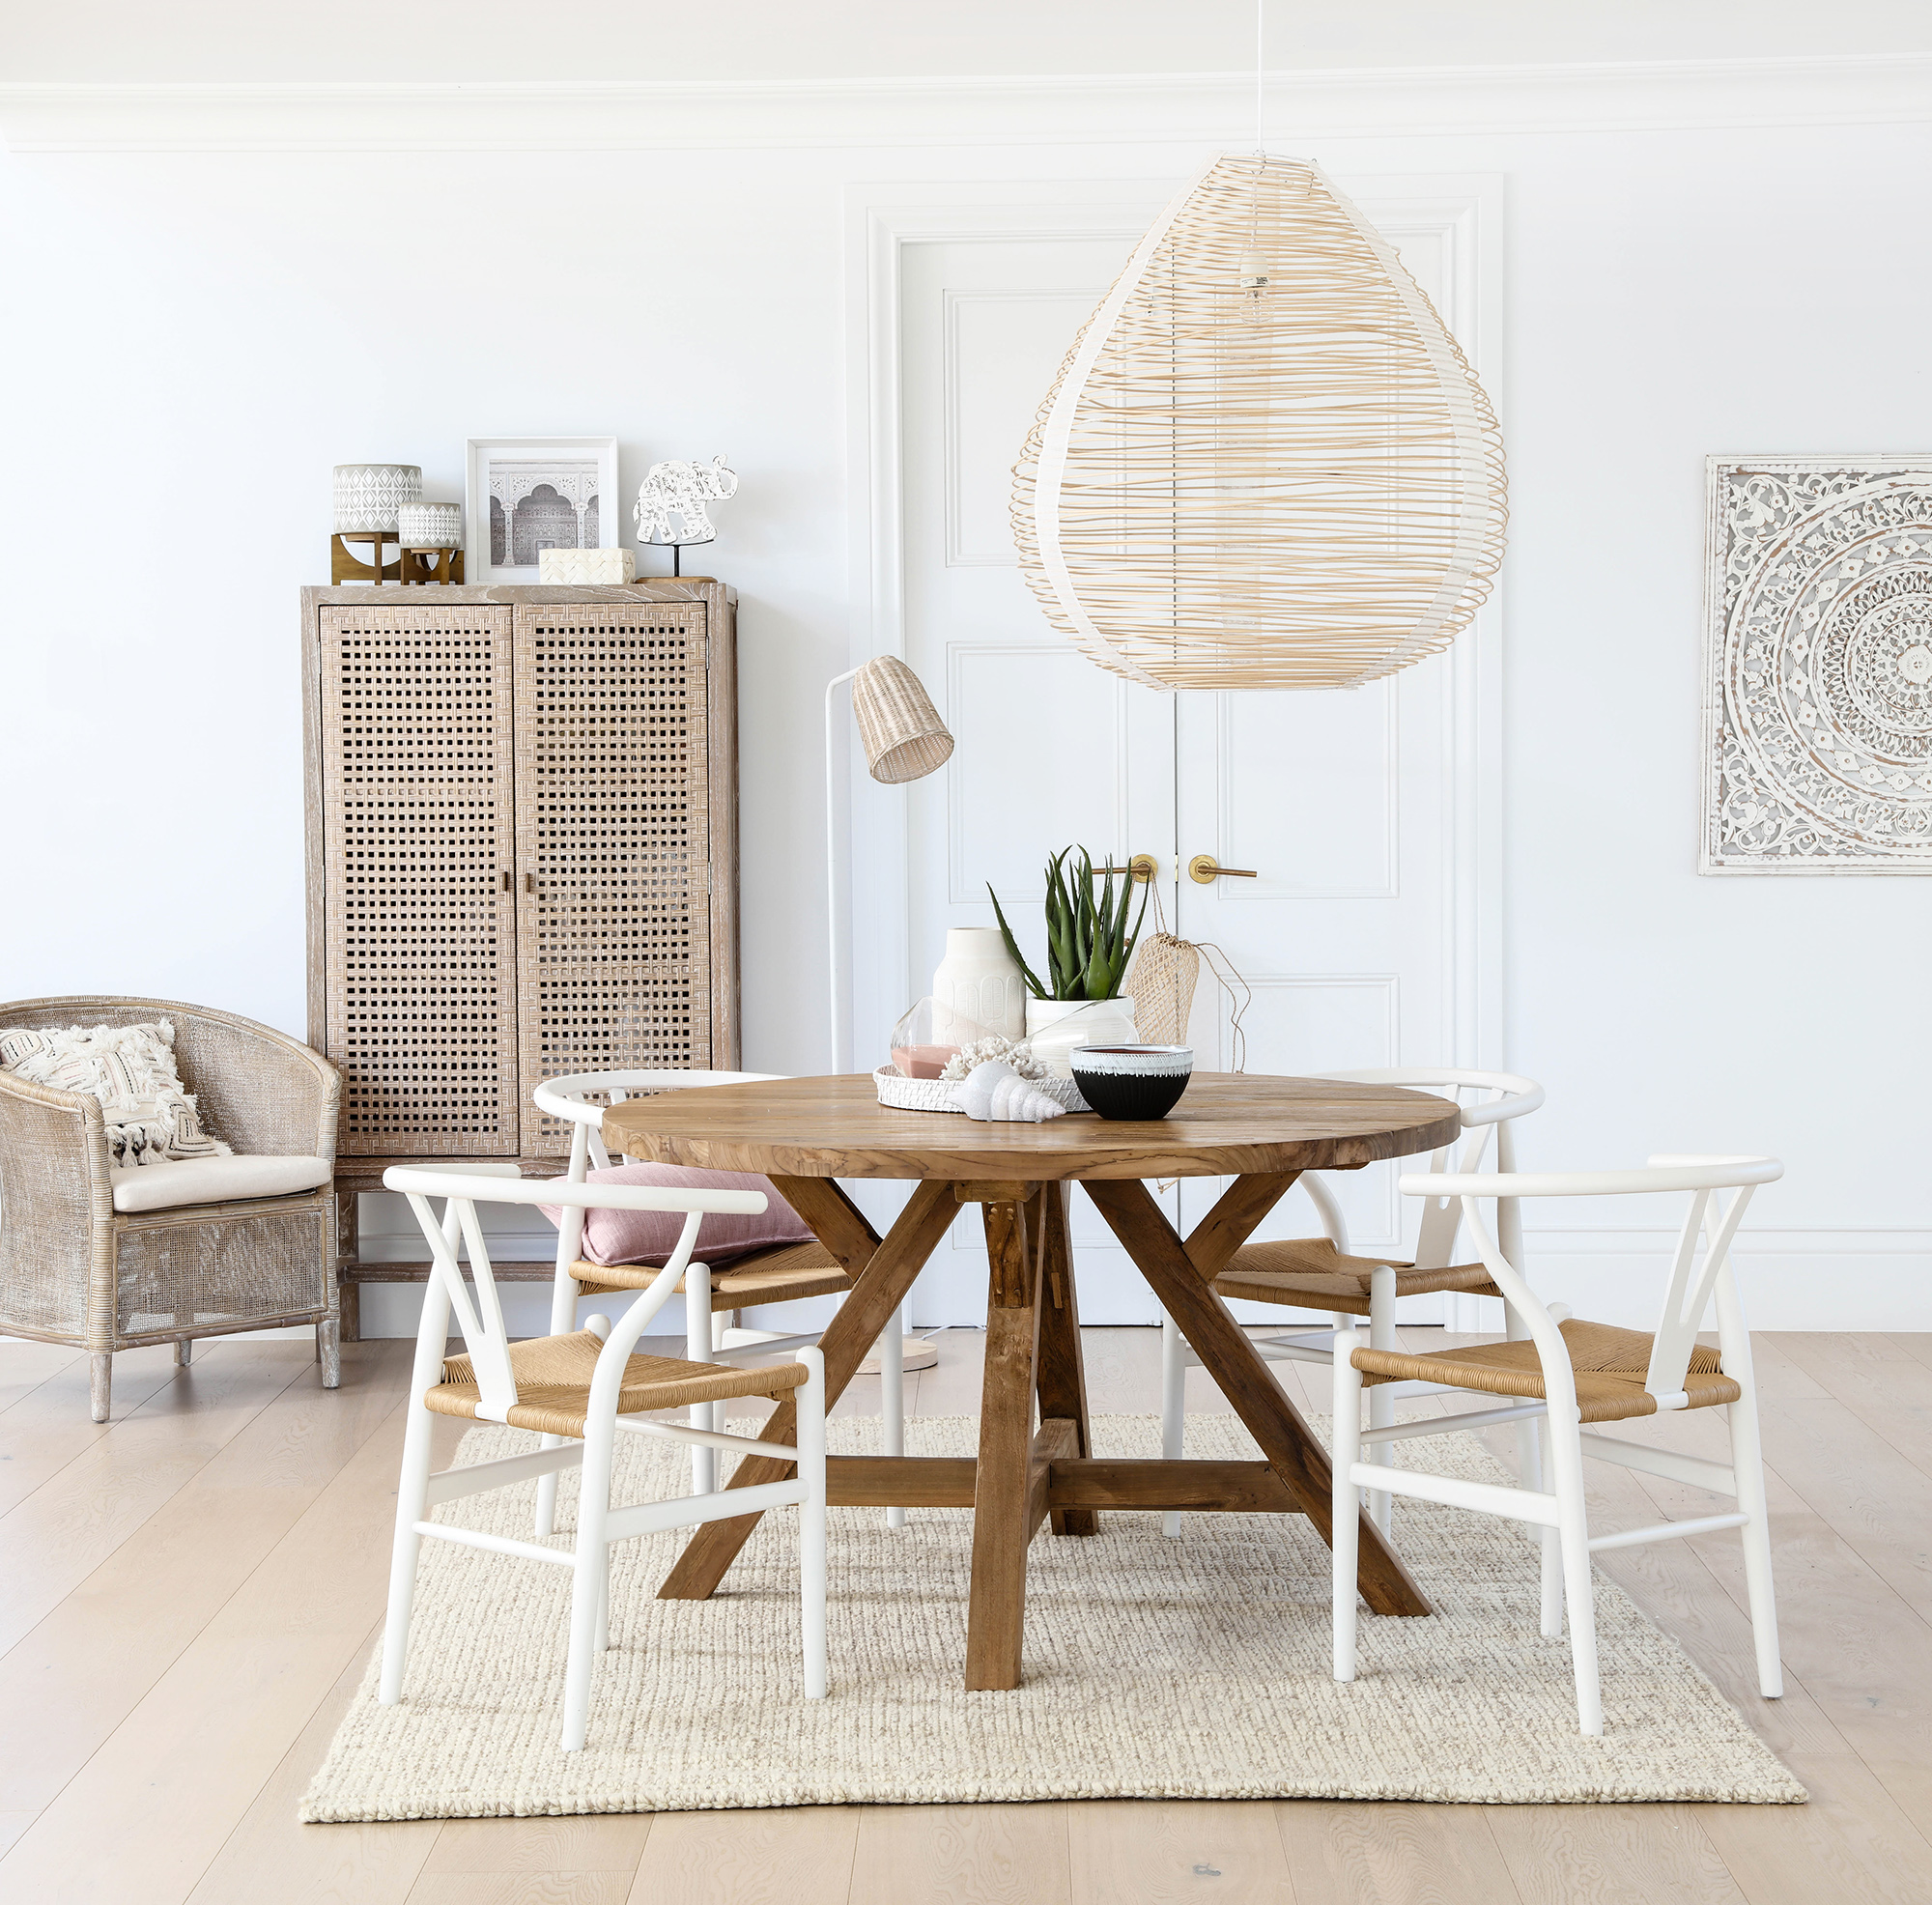 Summer Vibes With Oz Design Adore Home Magazine